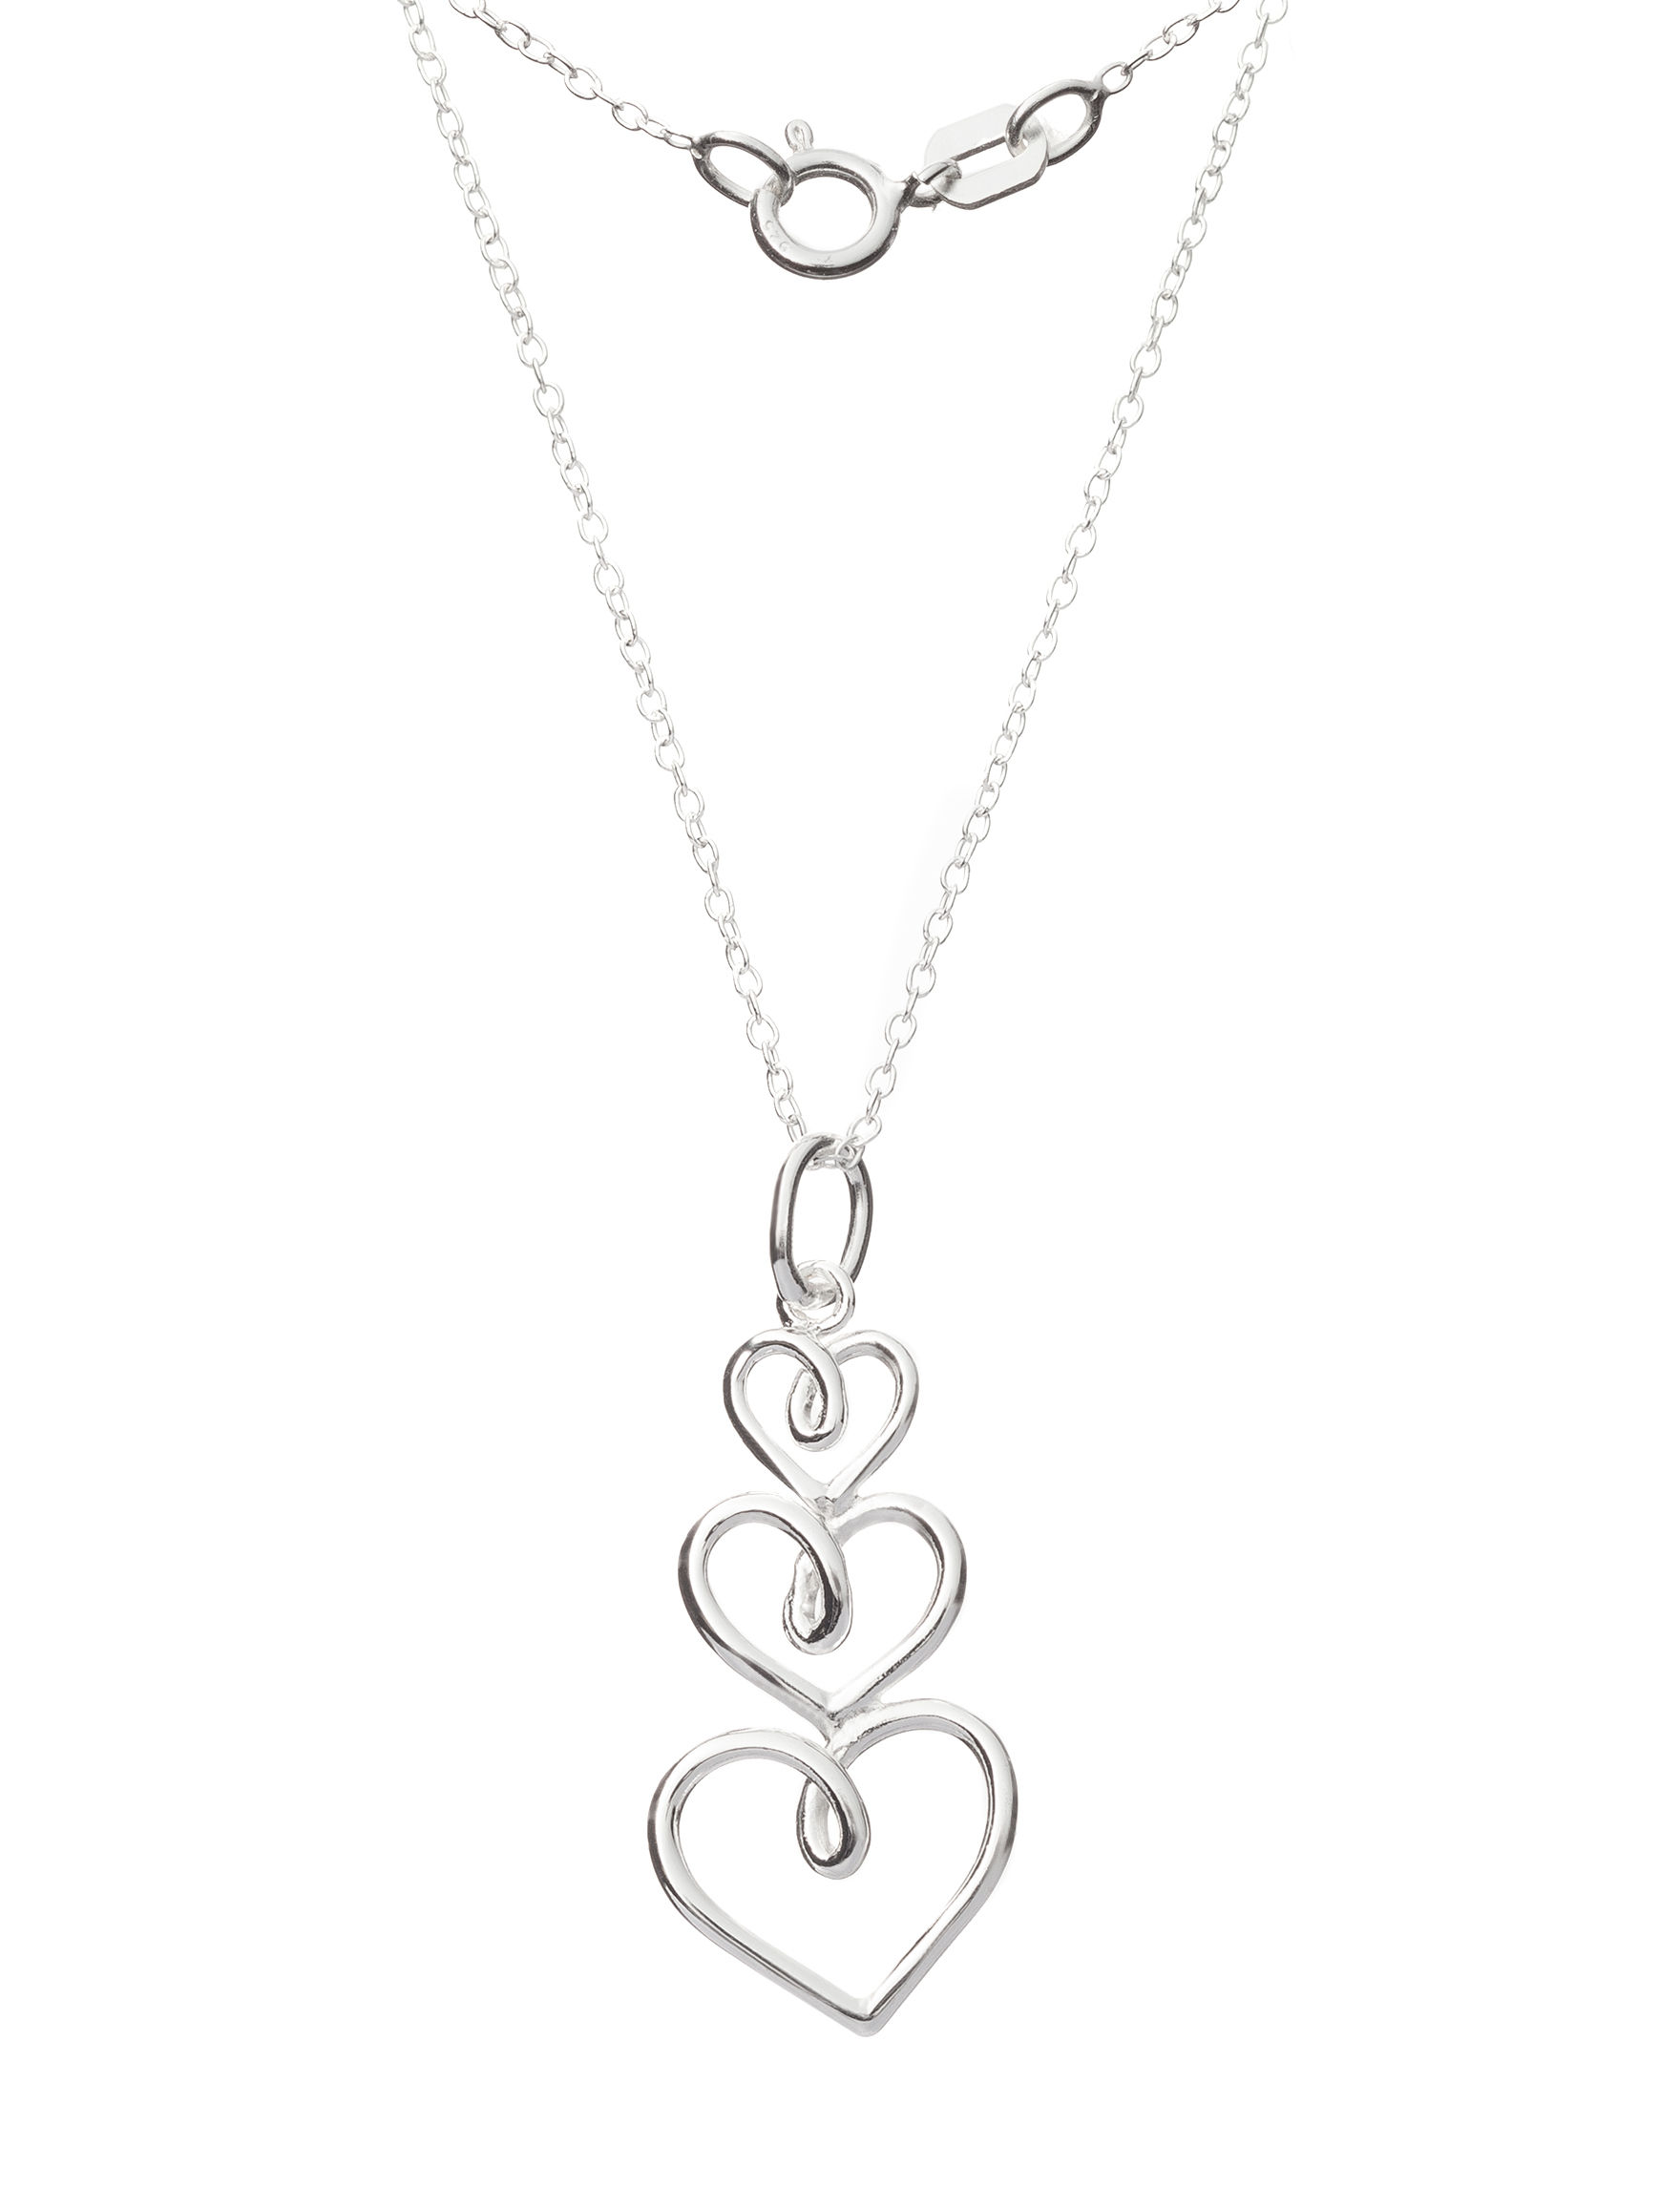 Marsala Silver Necklaces & Pendants Fine Jewelry